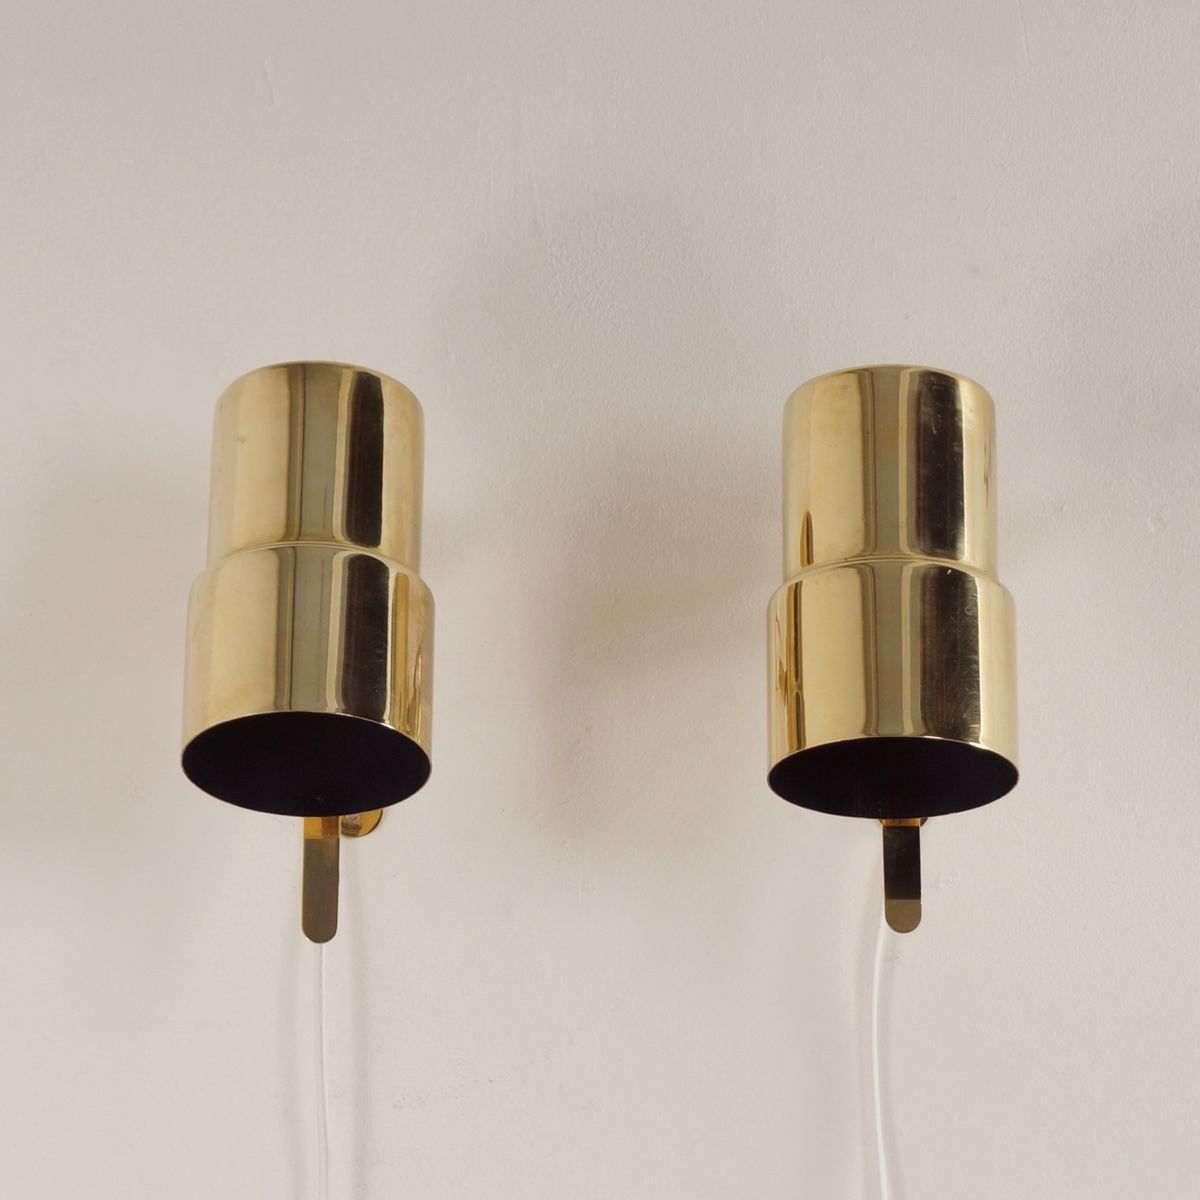 Wall Lamps Brass : Brass Wall Lamps from Hans Agne Jakobsson AB, 1970s, Set of 2 for sale at Pamono